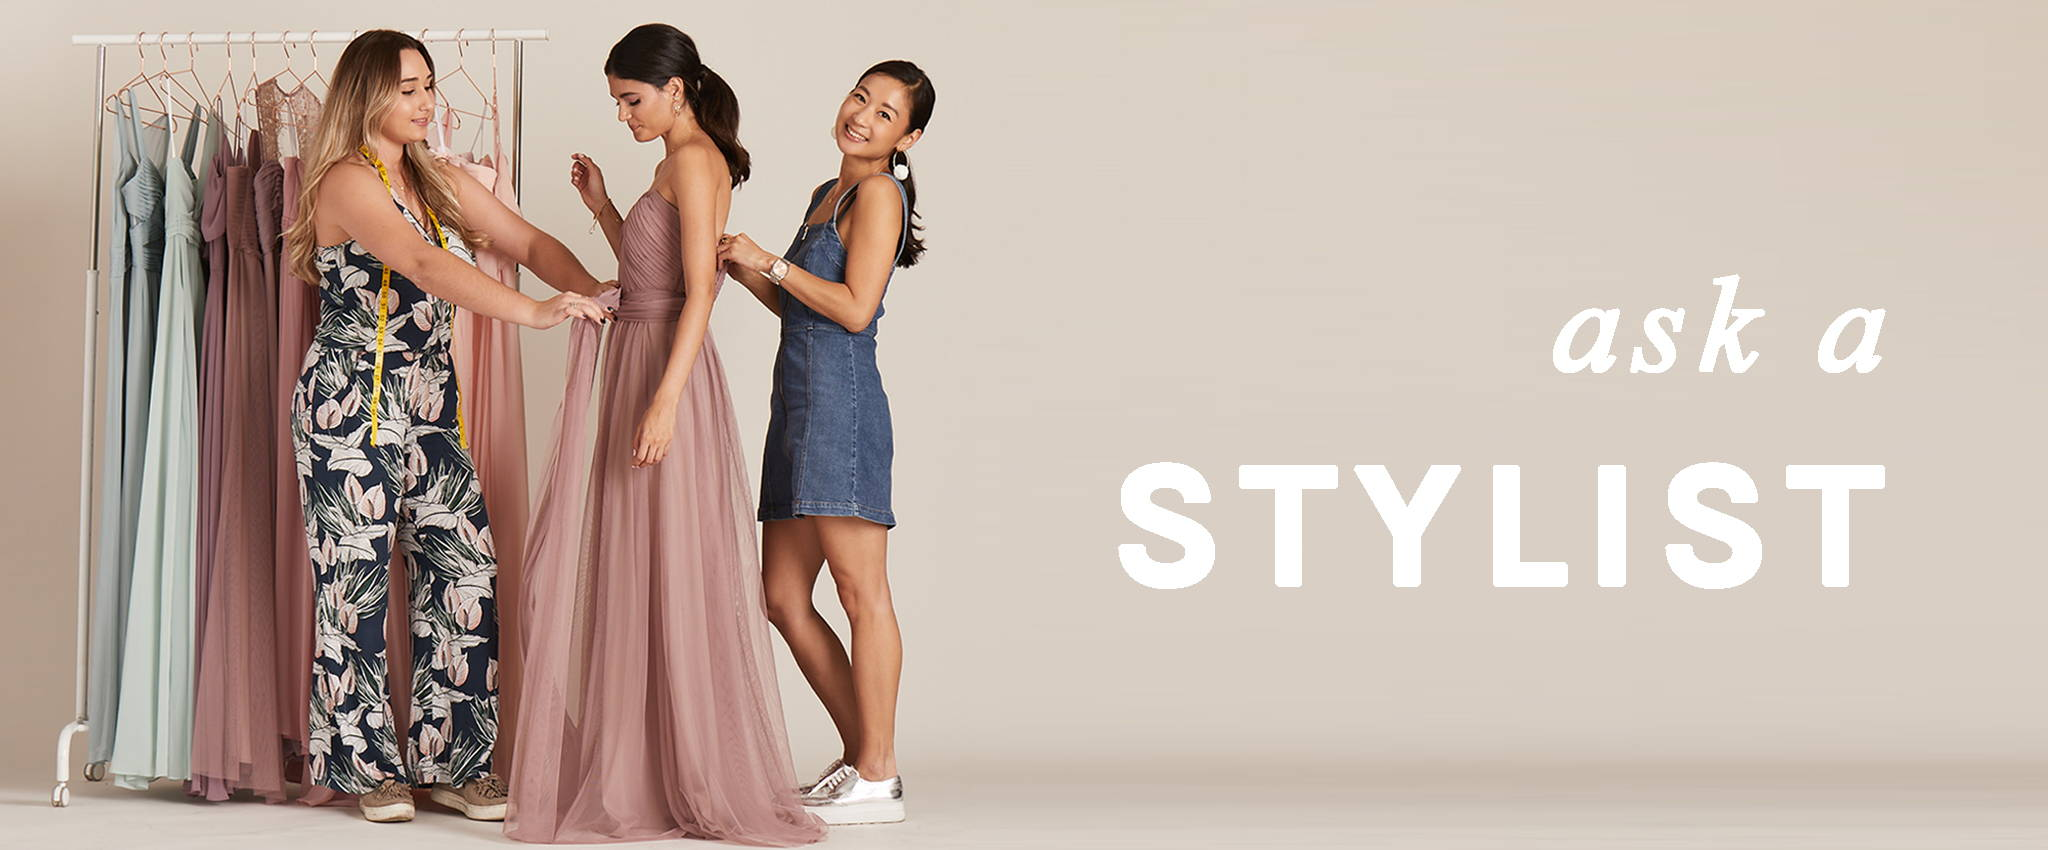 Ask a Stylist